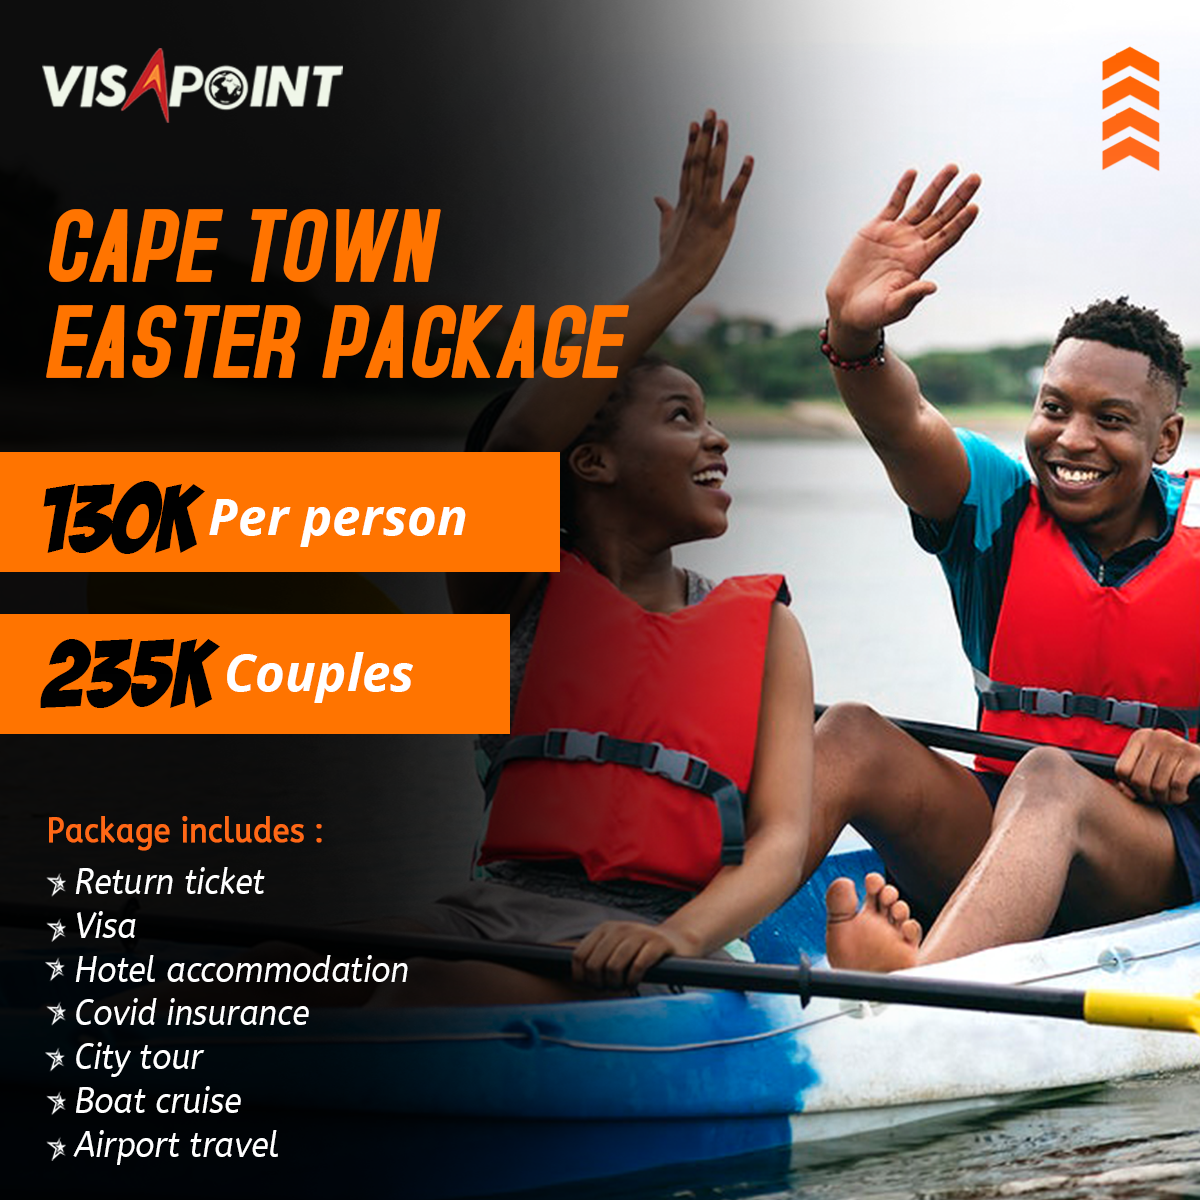 Cape town Easter Package